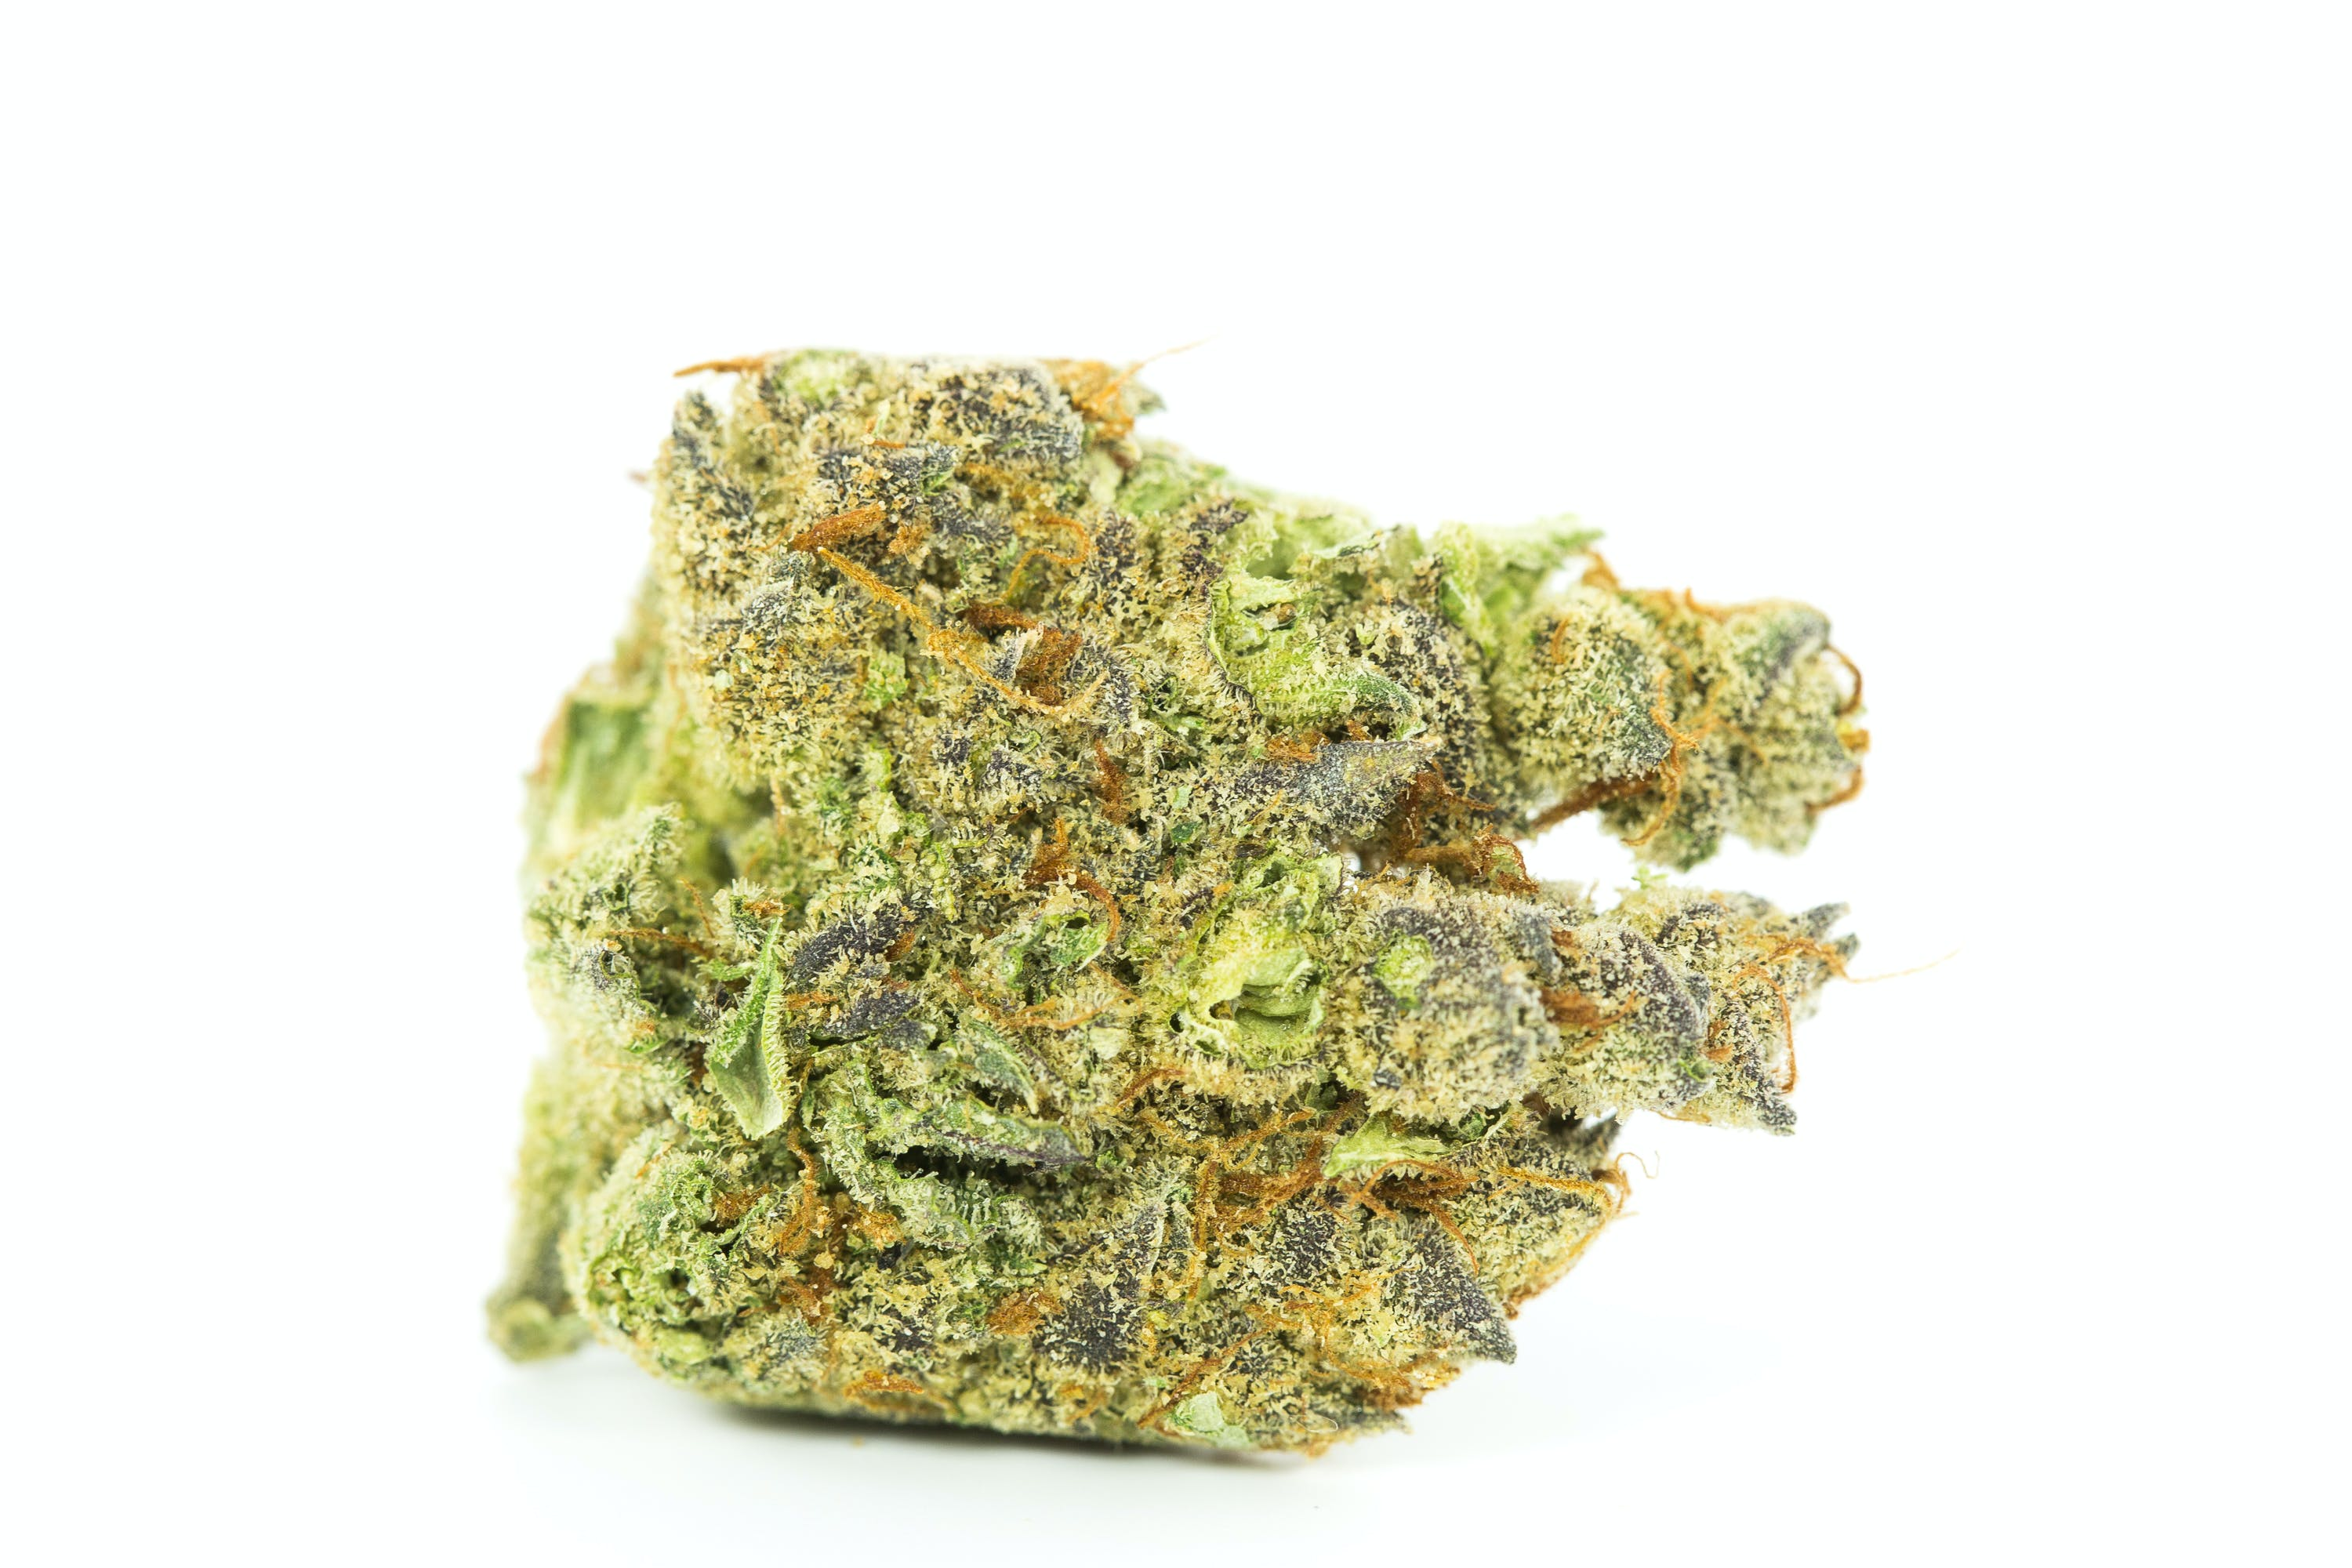 Kosher x Tangie 1 The 5 best products for outdoor smoking sessions